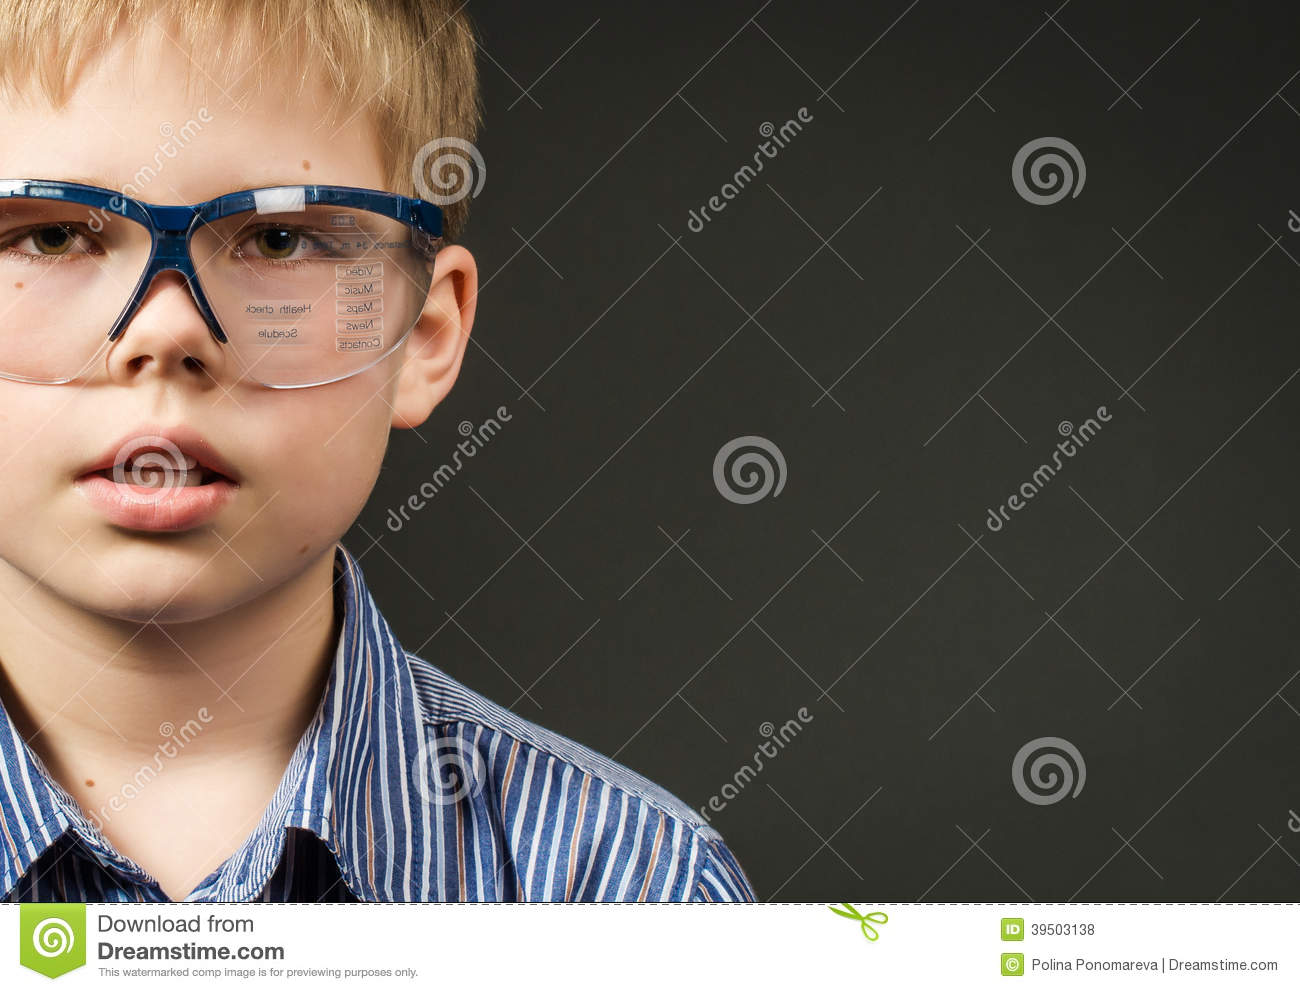 Picture of cute boy with digital glasses. Technology concept.